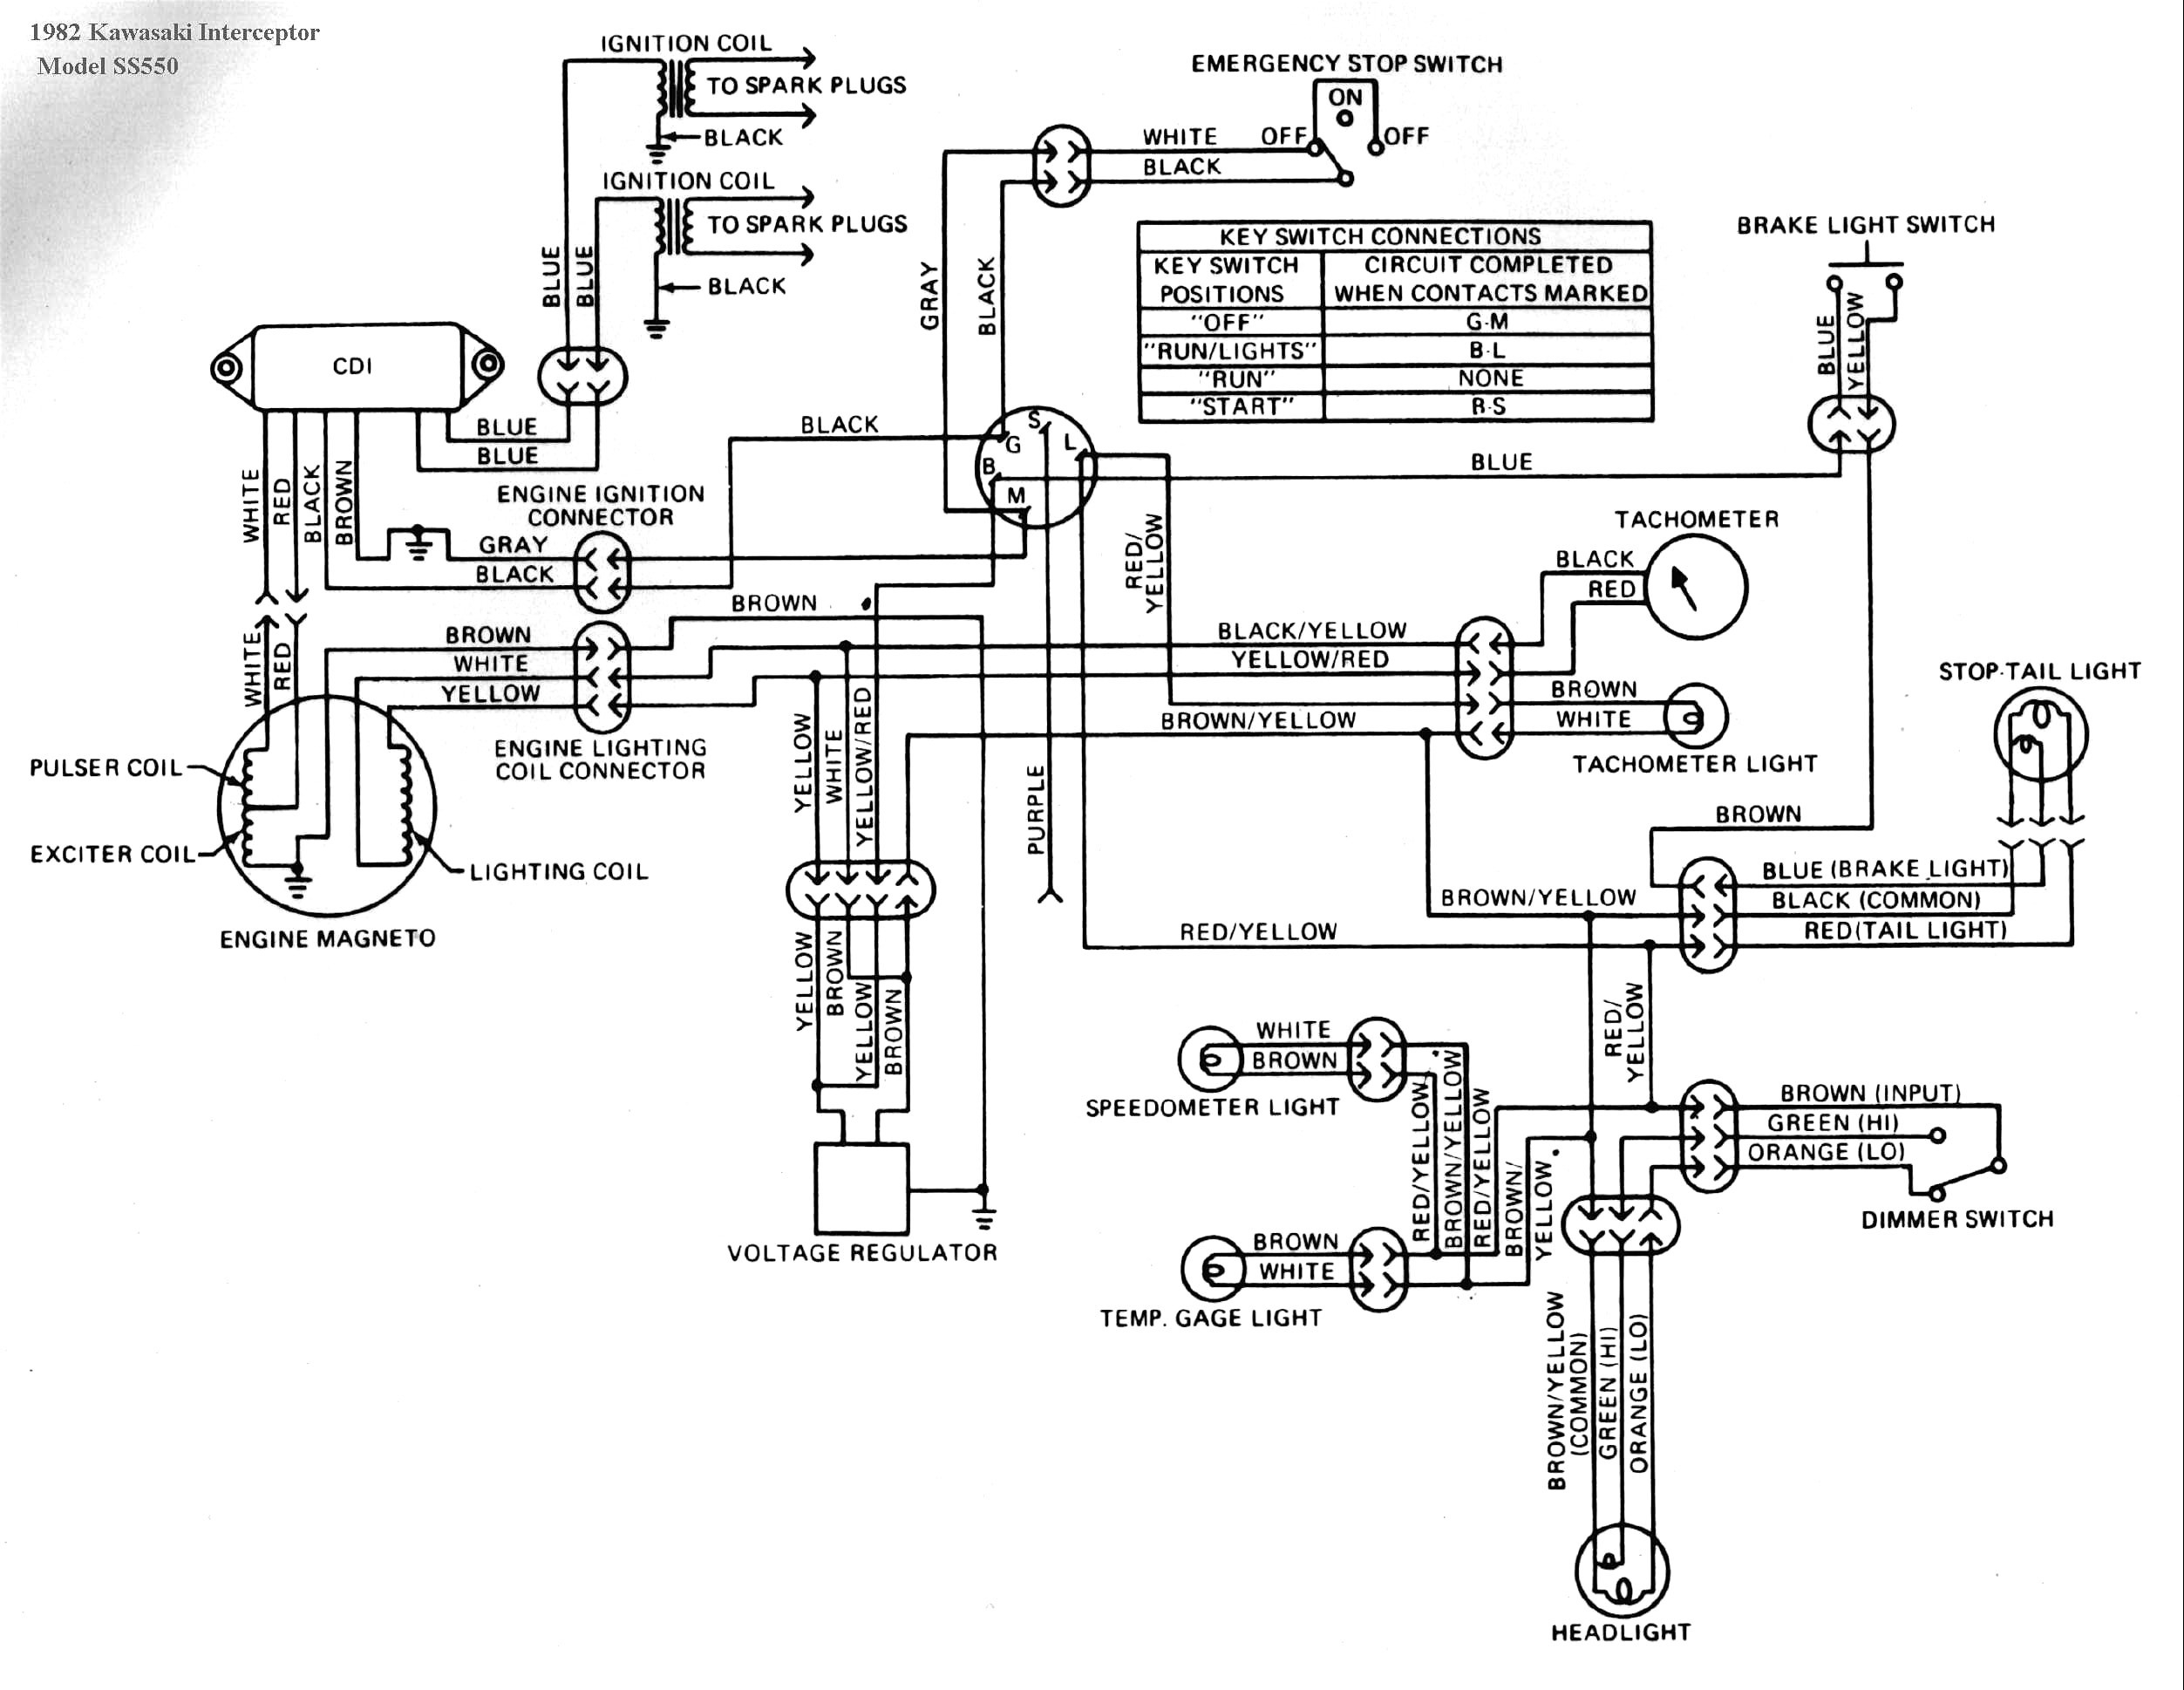 85 Ski Doo 377 Starter Diagram - Wiring Diagram Option Mamba Monster Wiring Diagram on mamba monster esc wires, mamba monster ecu got wet, mamba max pro wiring diagram, mamba monster wiring dia, mamba monster series diagram,